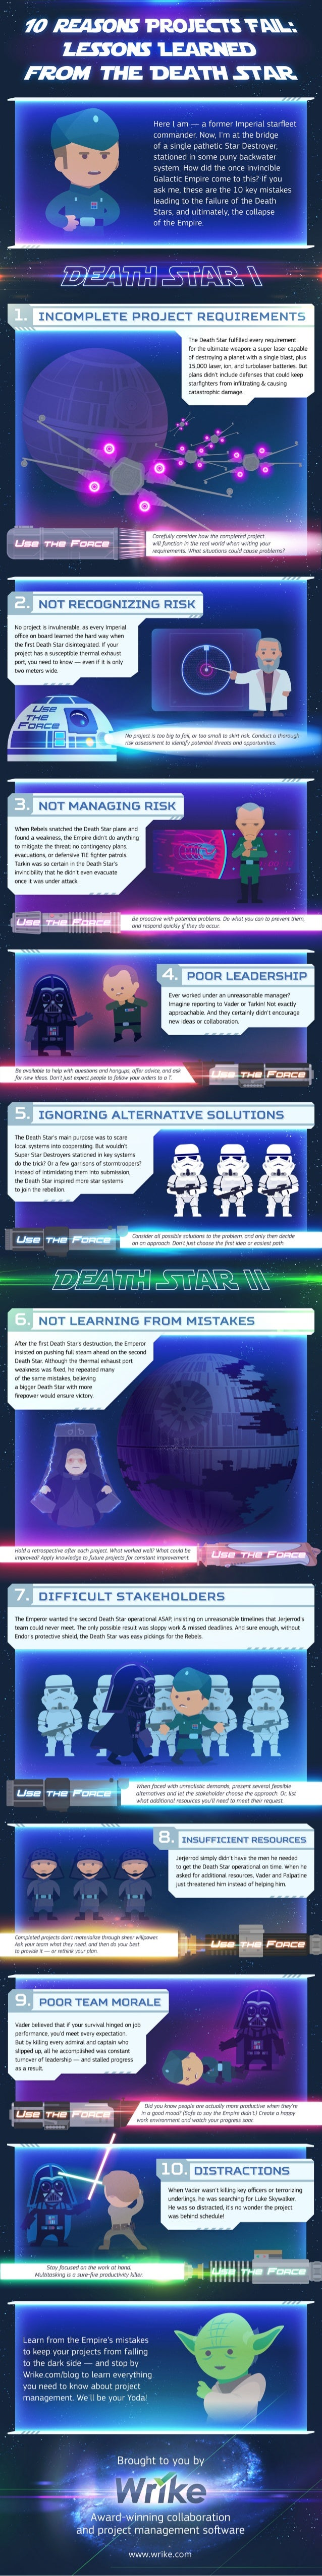 10 REASONS Pnosactstm. -. LESSONS LEARNED FROM THE DEATH st AR  Here I am-_—. — a former Imperial starfleet commander.  Now...